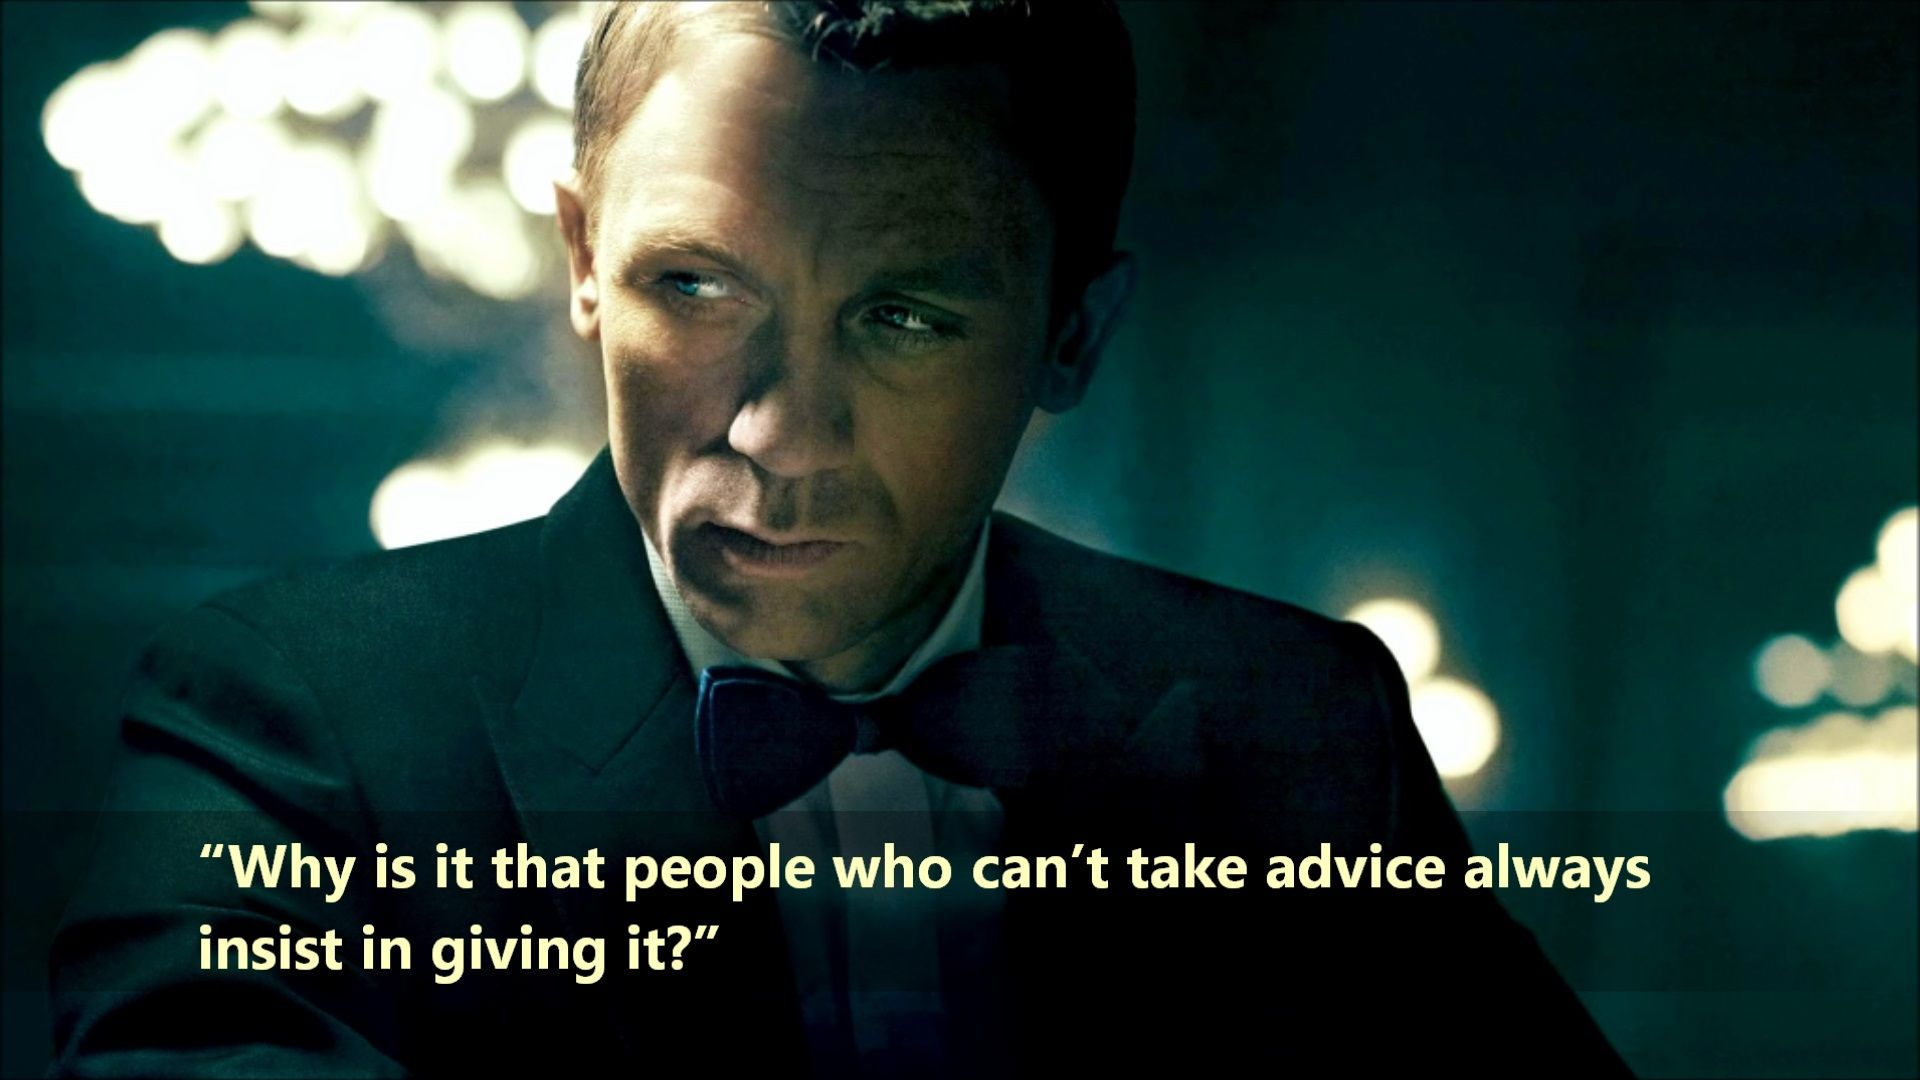 Casino royale quotes 2006 casinos in minnesoat